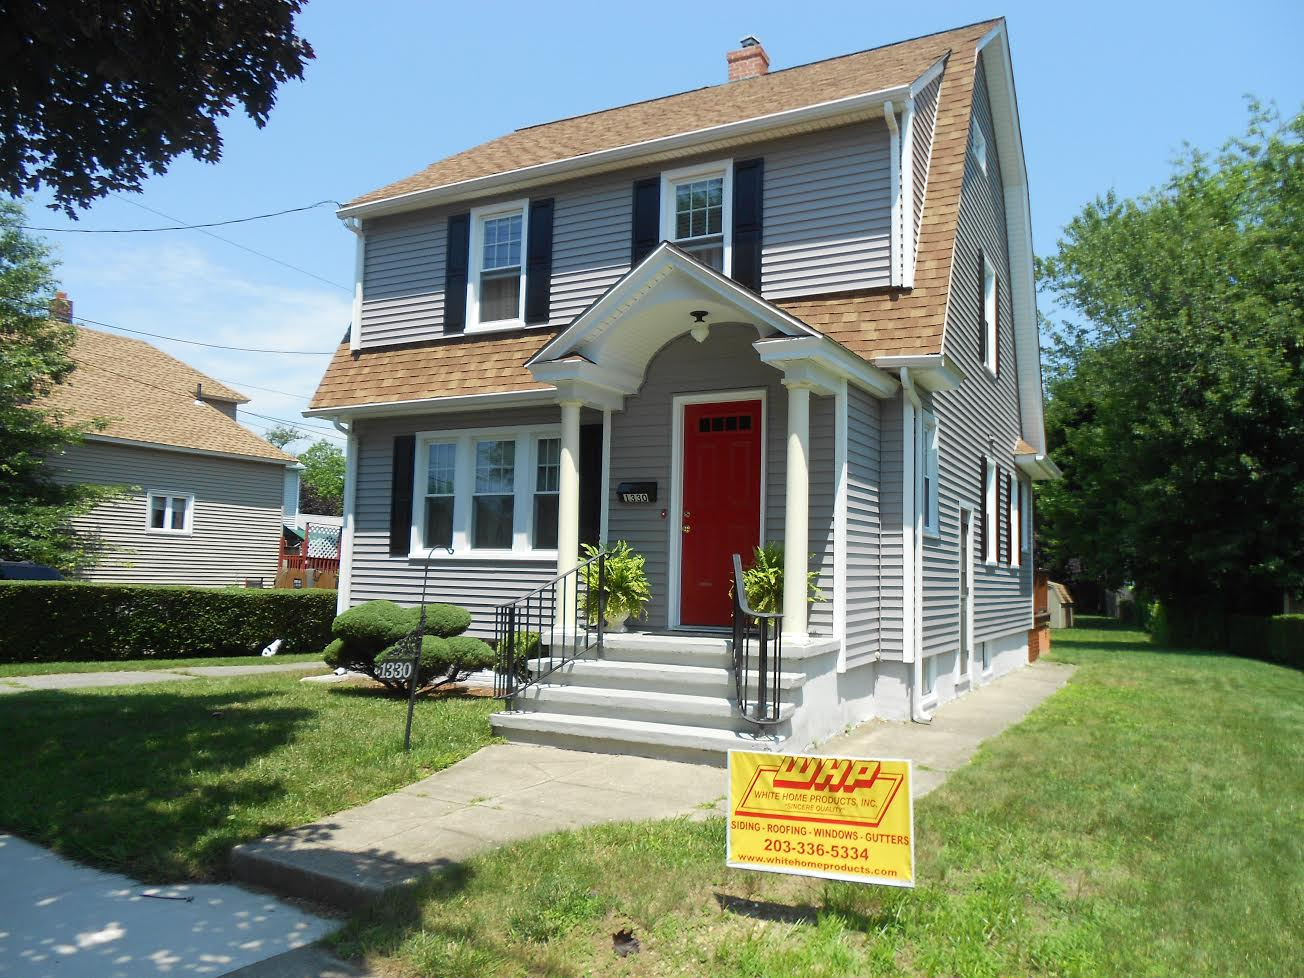 White Home Products In Stratford Ct 203 336 5